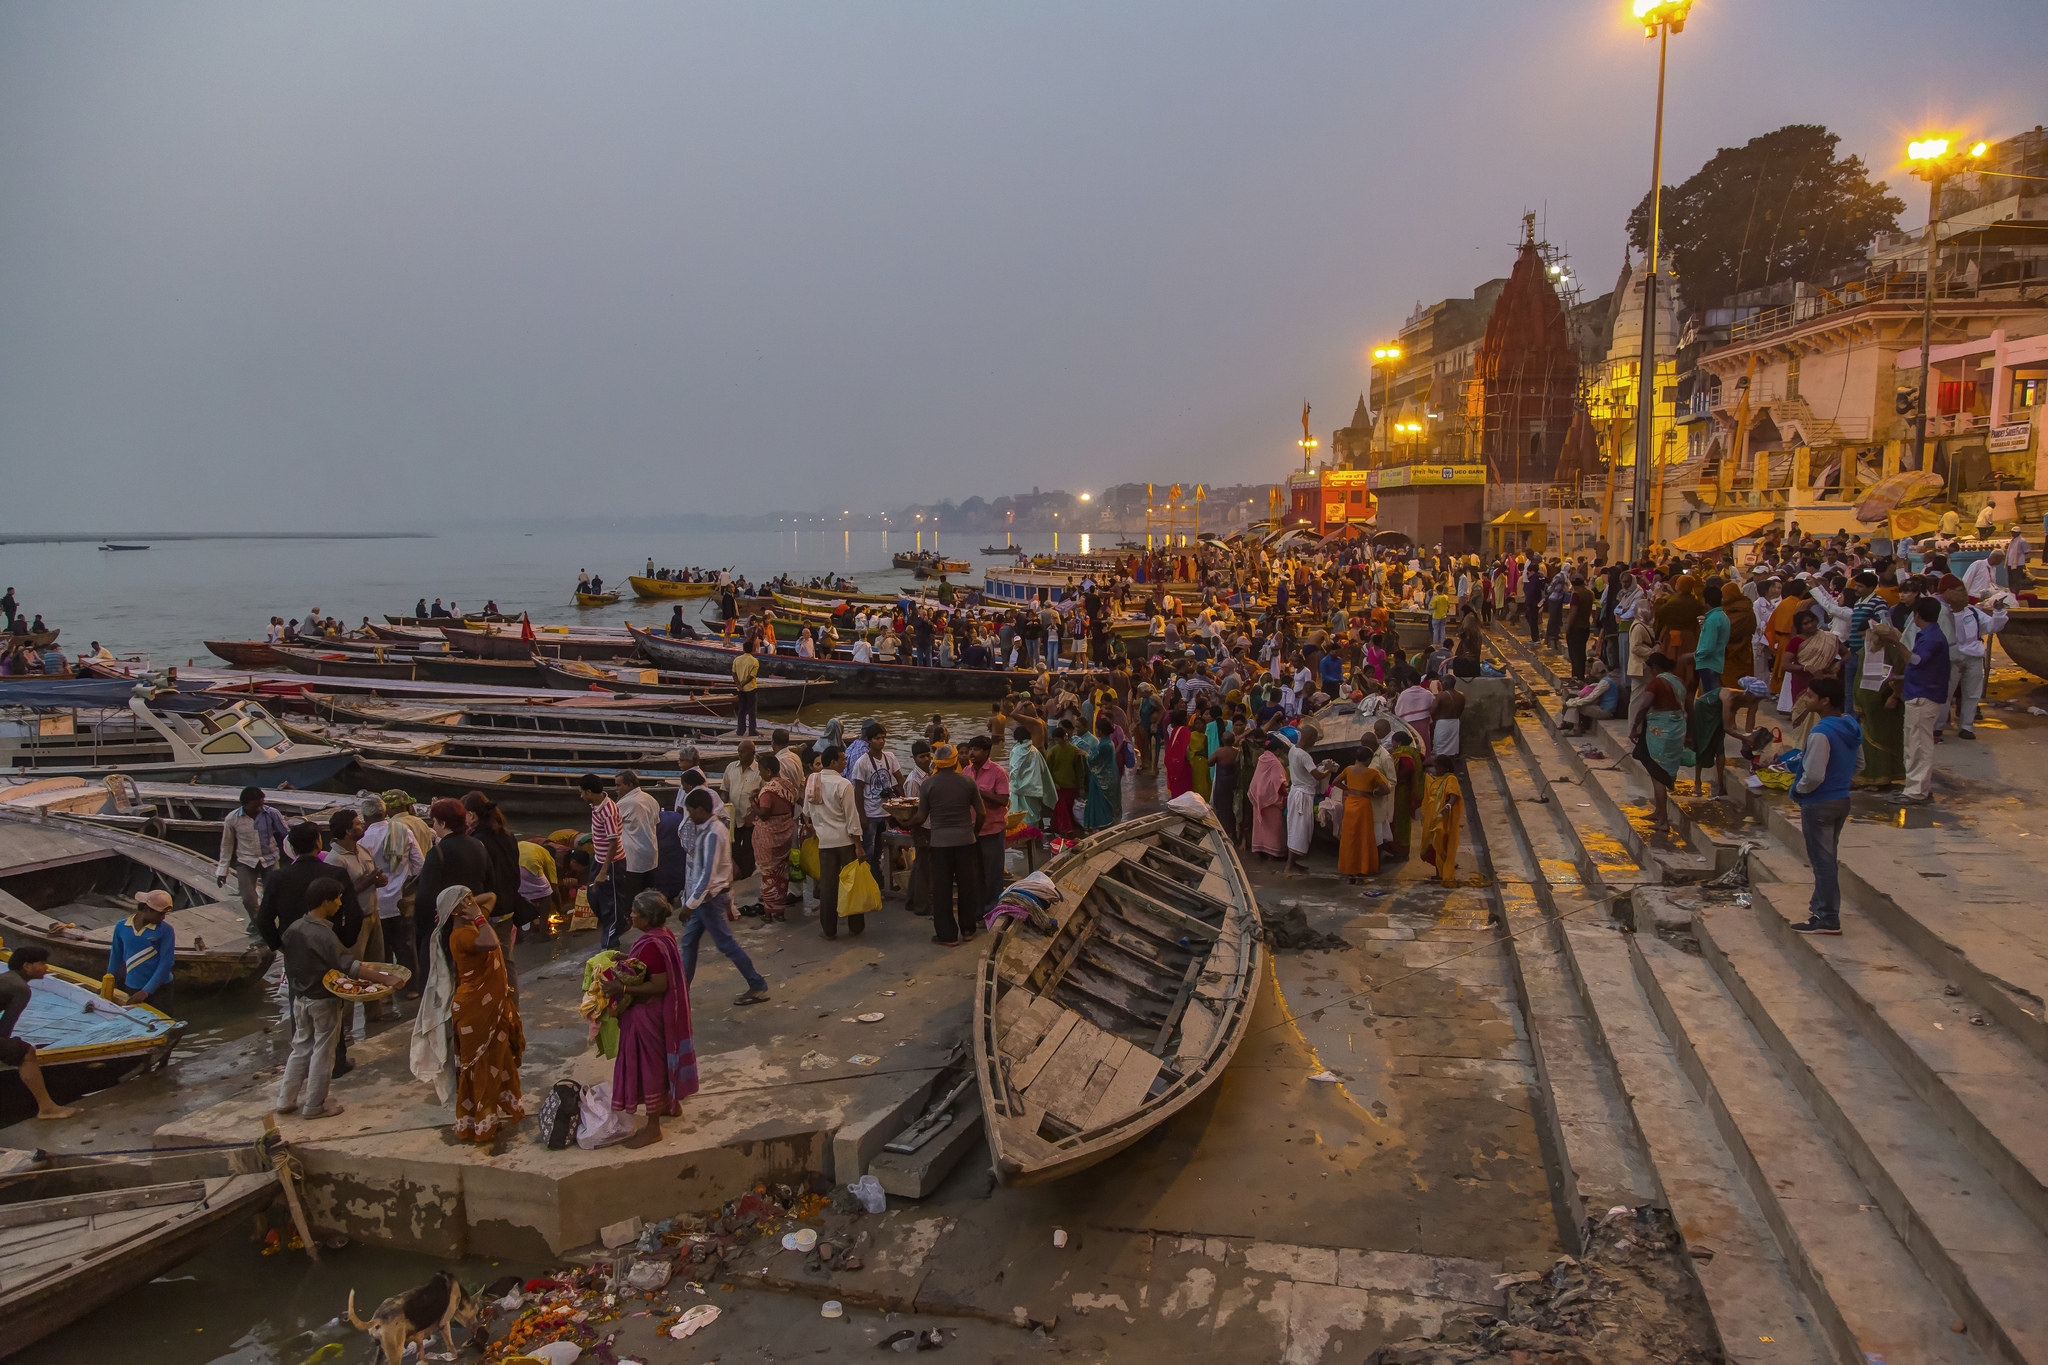 Early morning at the Dashashwamedh Ghat